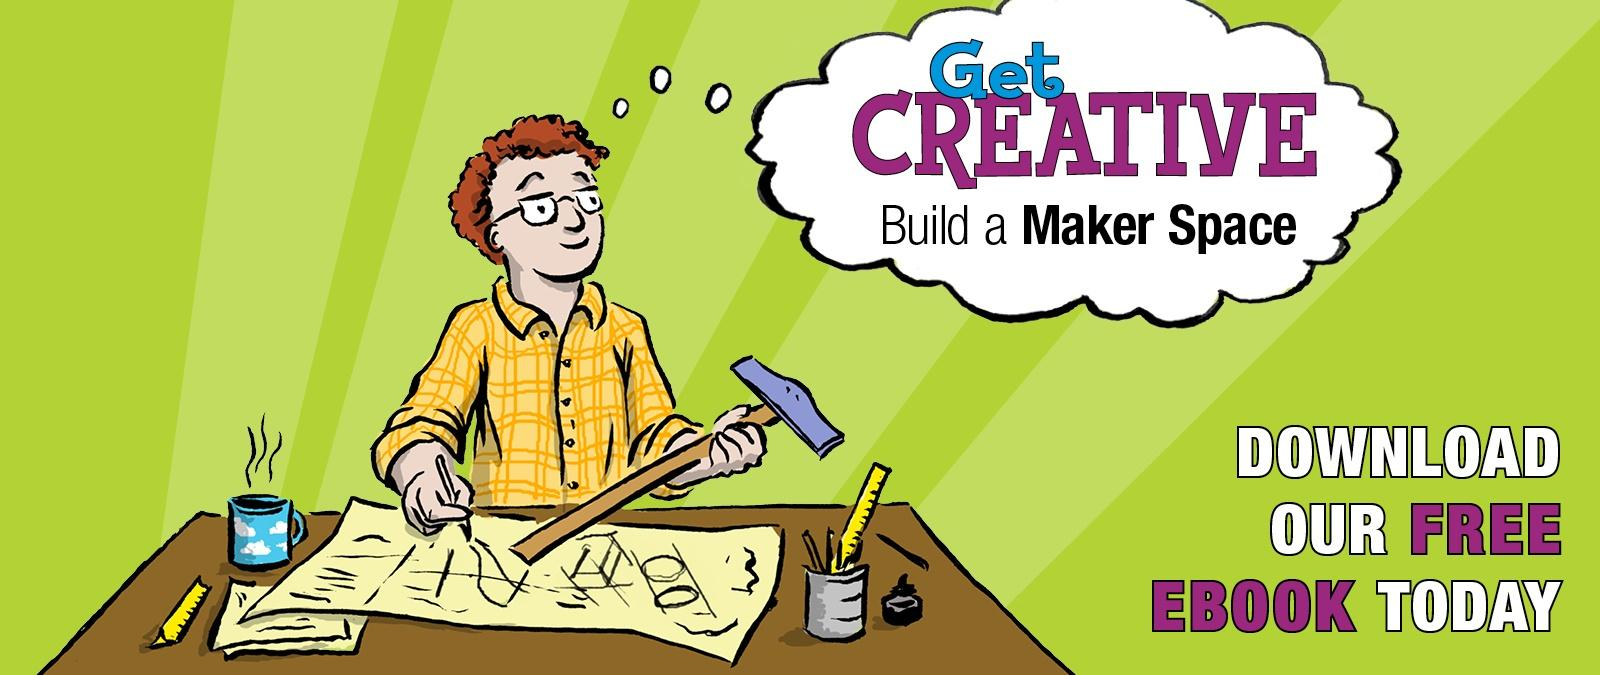 Get Creative! Build Your Own Maker Space